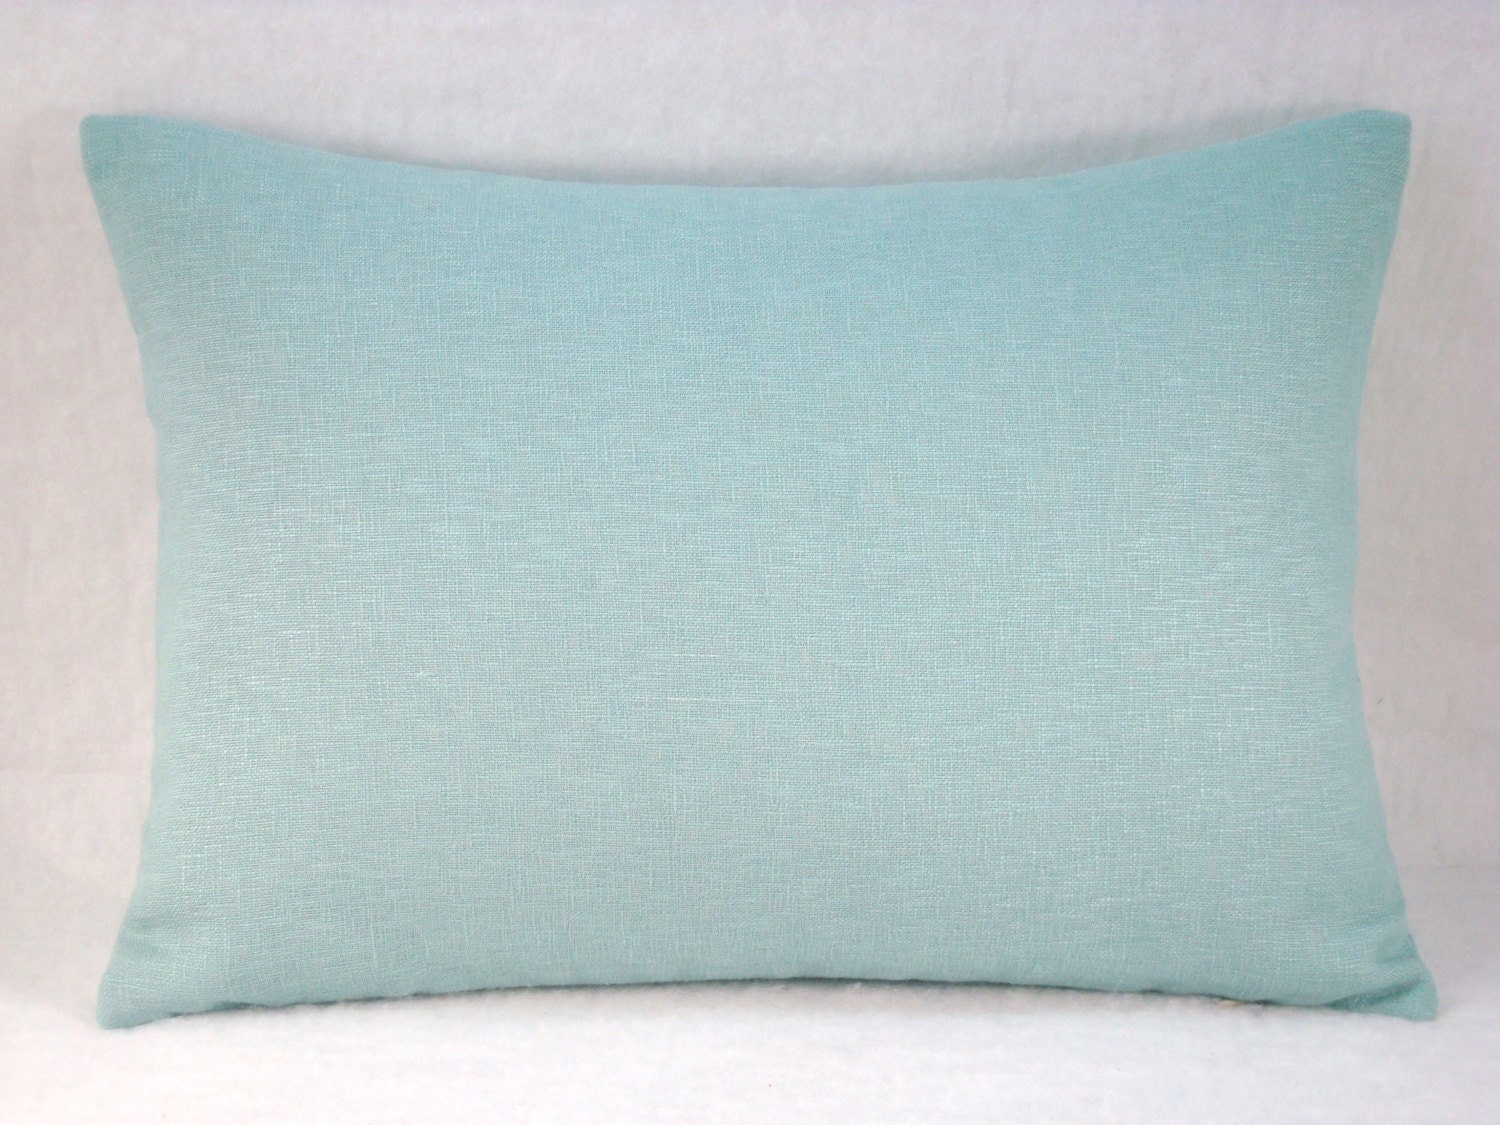 Modern Lumbar Pillows : Accent Linen Lumbar Pillow Modern Decorative Lumbar Pillow